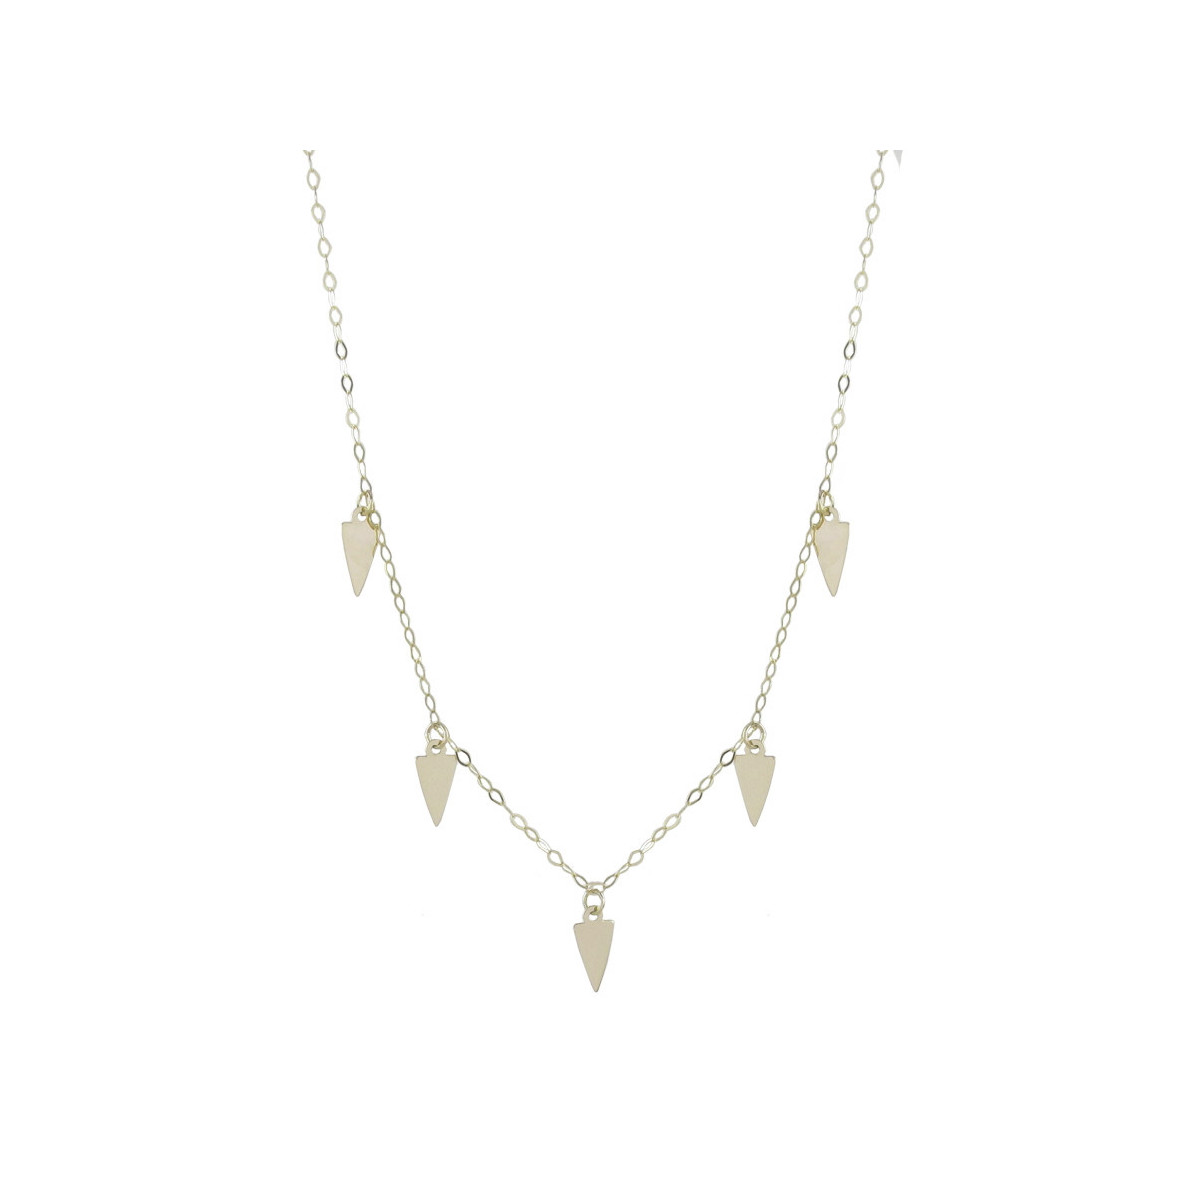 YELLOW GOLD NECKLACE 40 CM